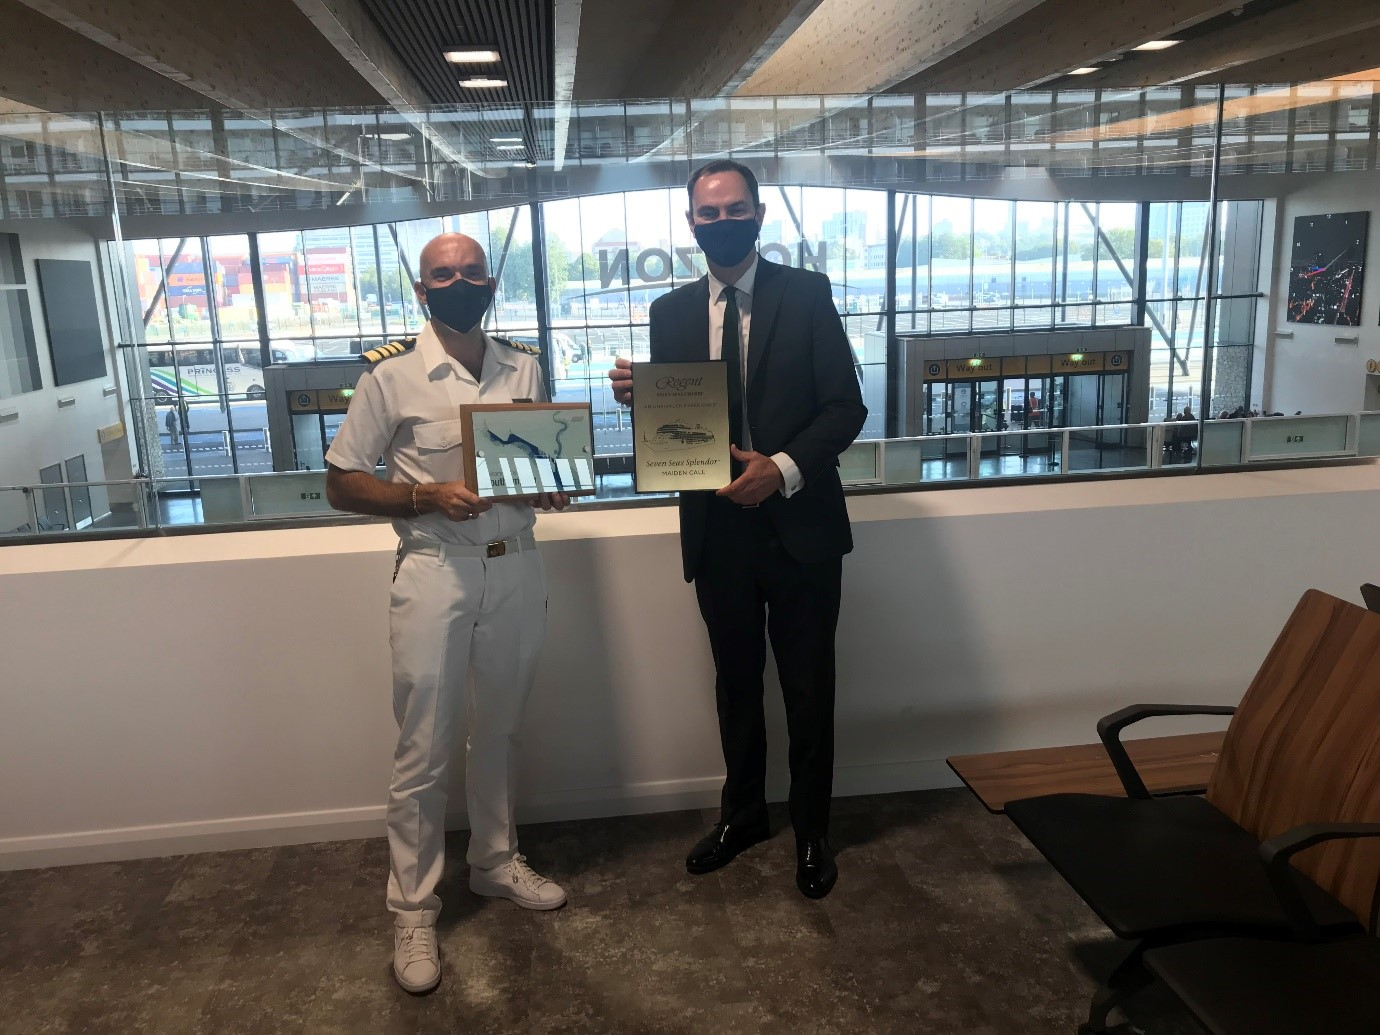 Southampton's Horizon Cruise Terminal welcomes first official call  - Captain Diego Michelozzi and Port of Southampton Director Alastair Welch exchange plaques  (September 2021)